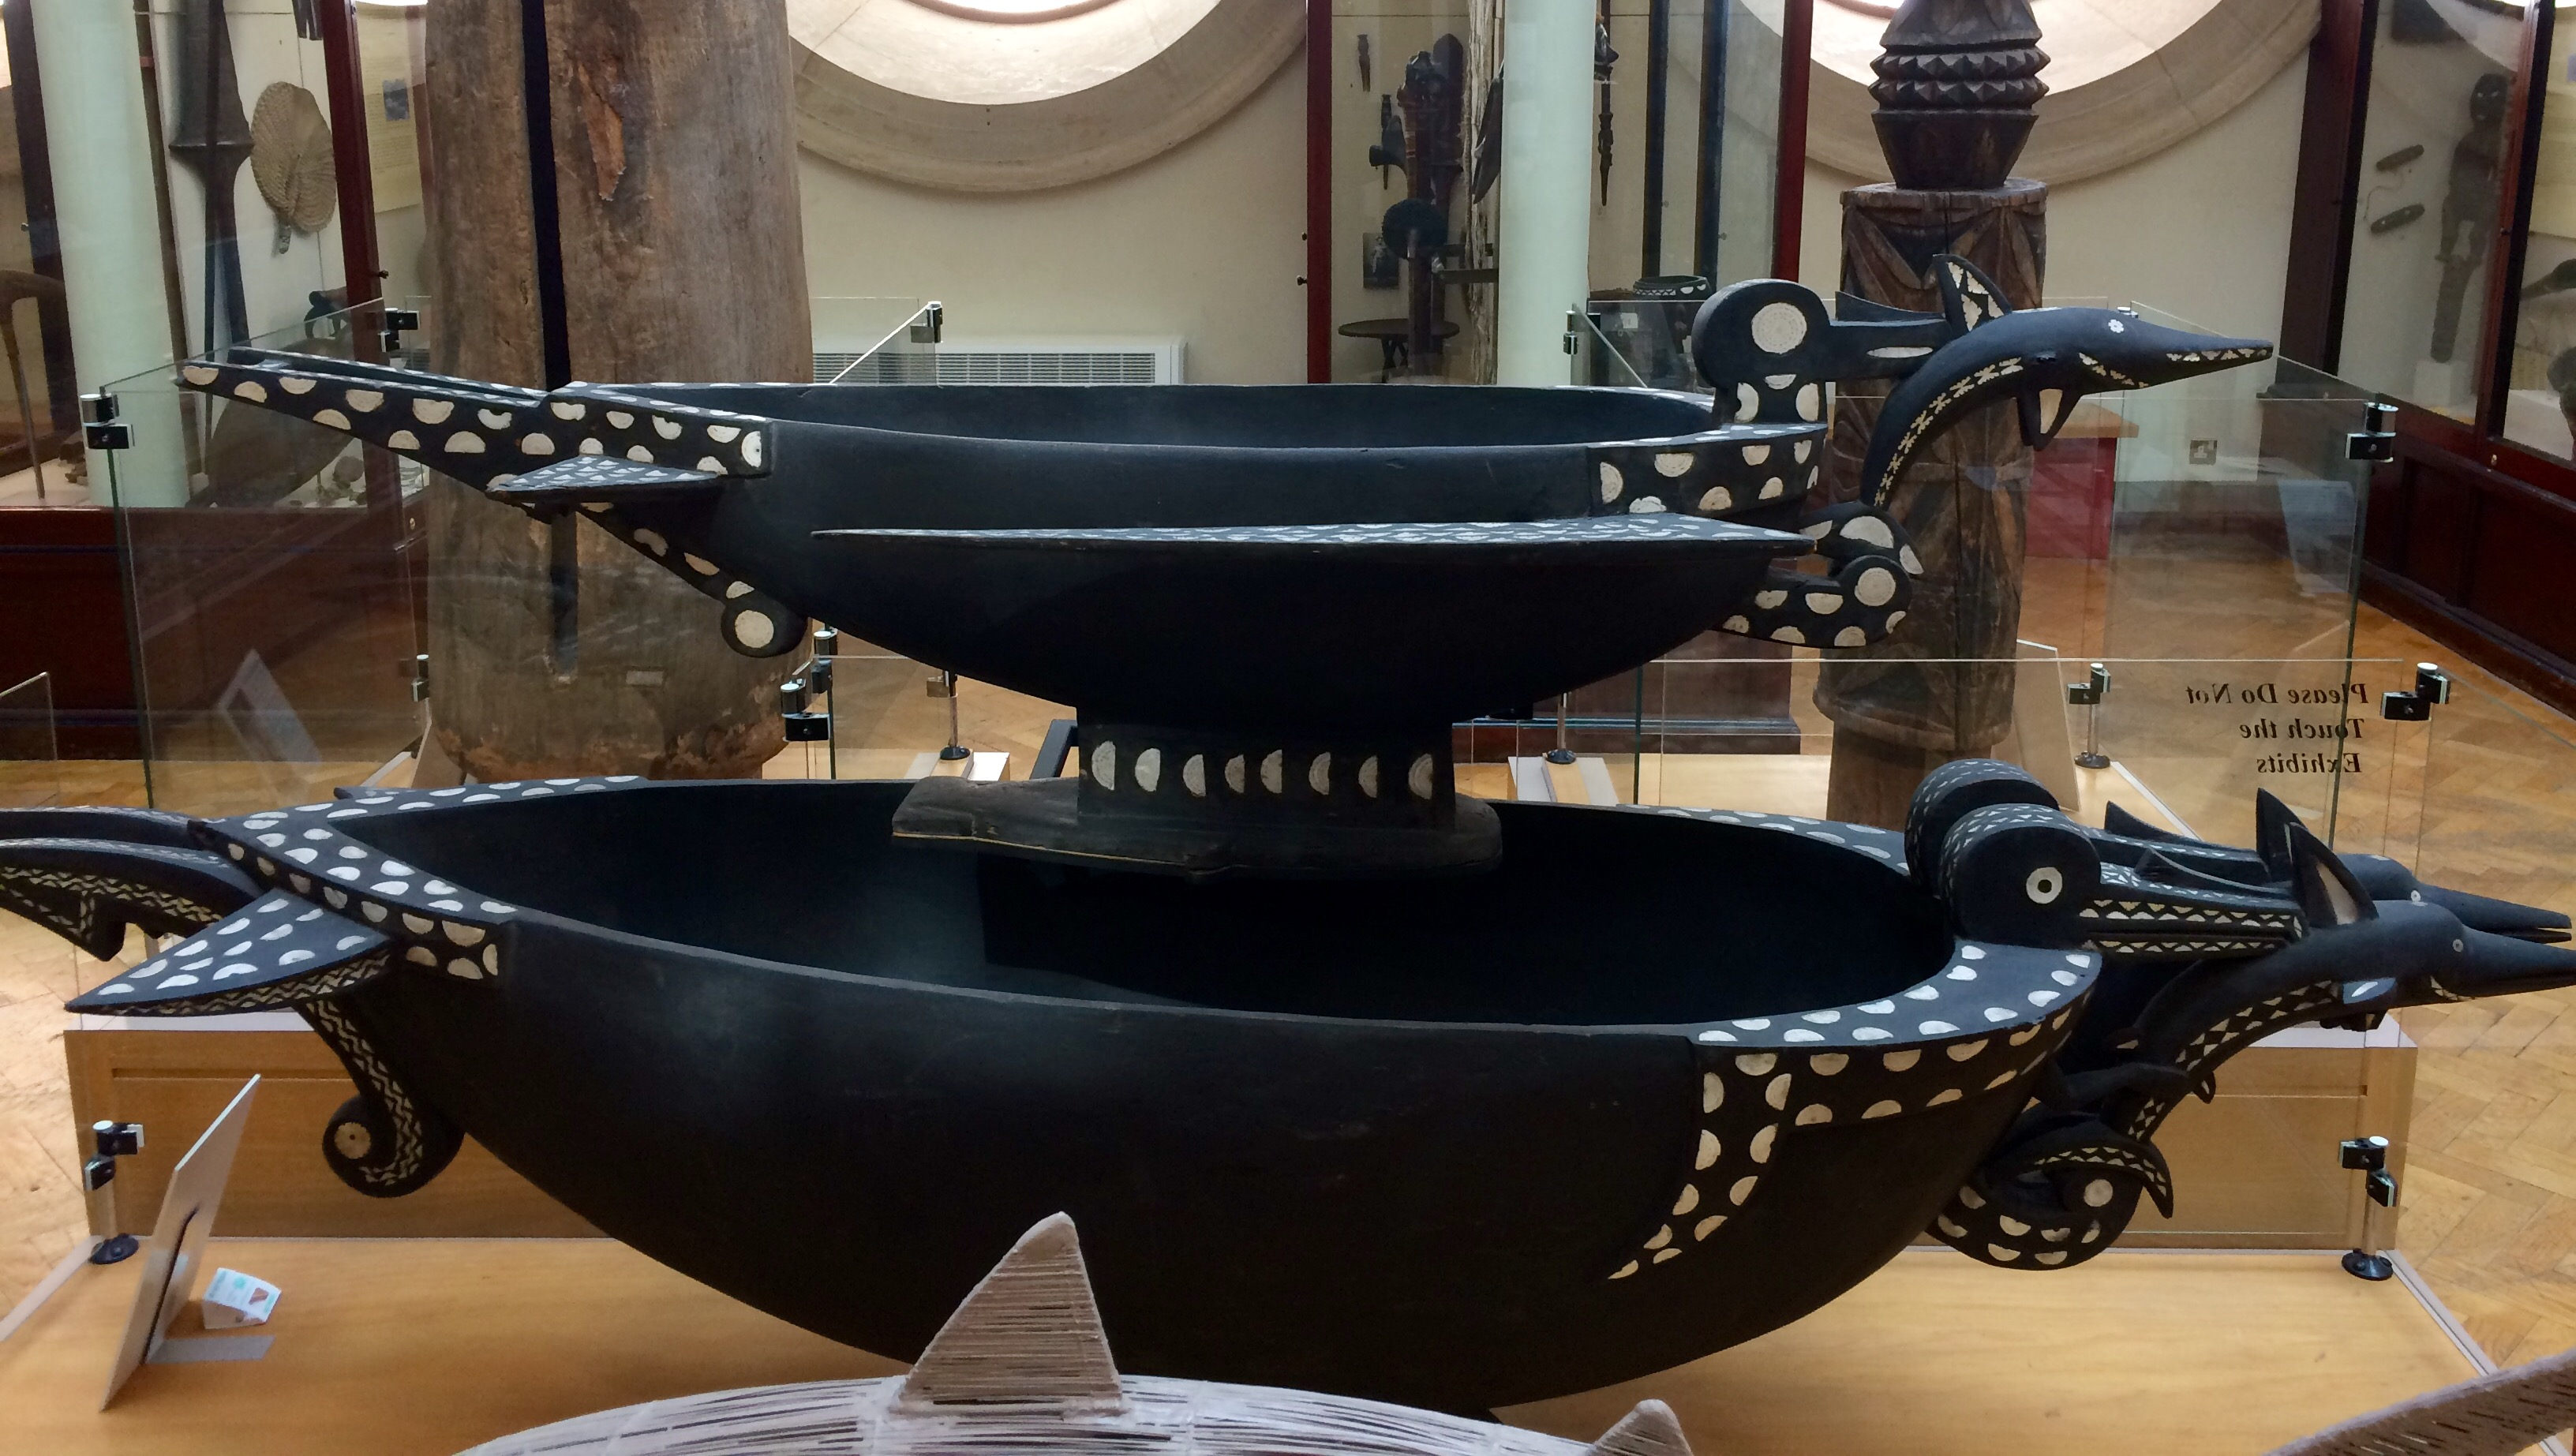 Food bowls from the Solomon Islands shown on display